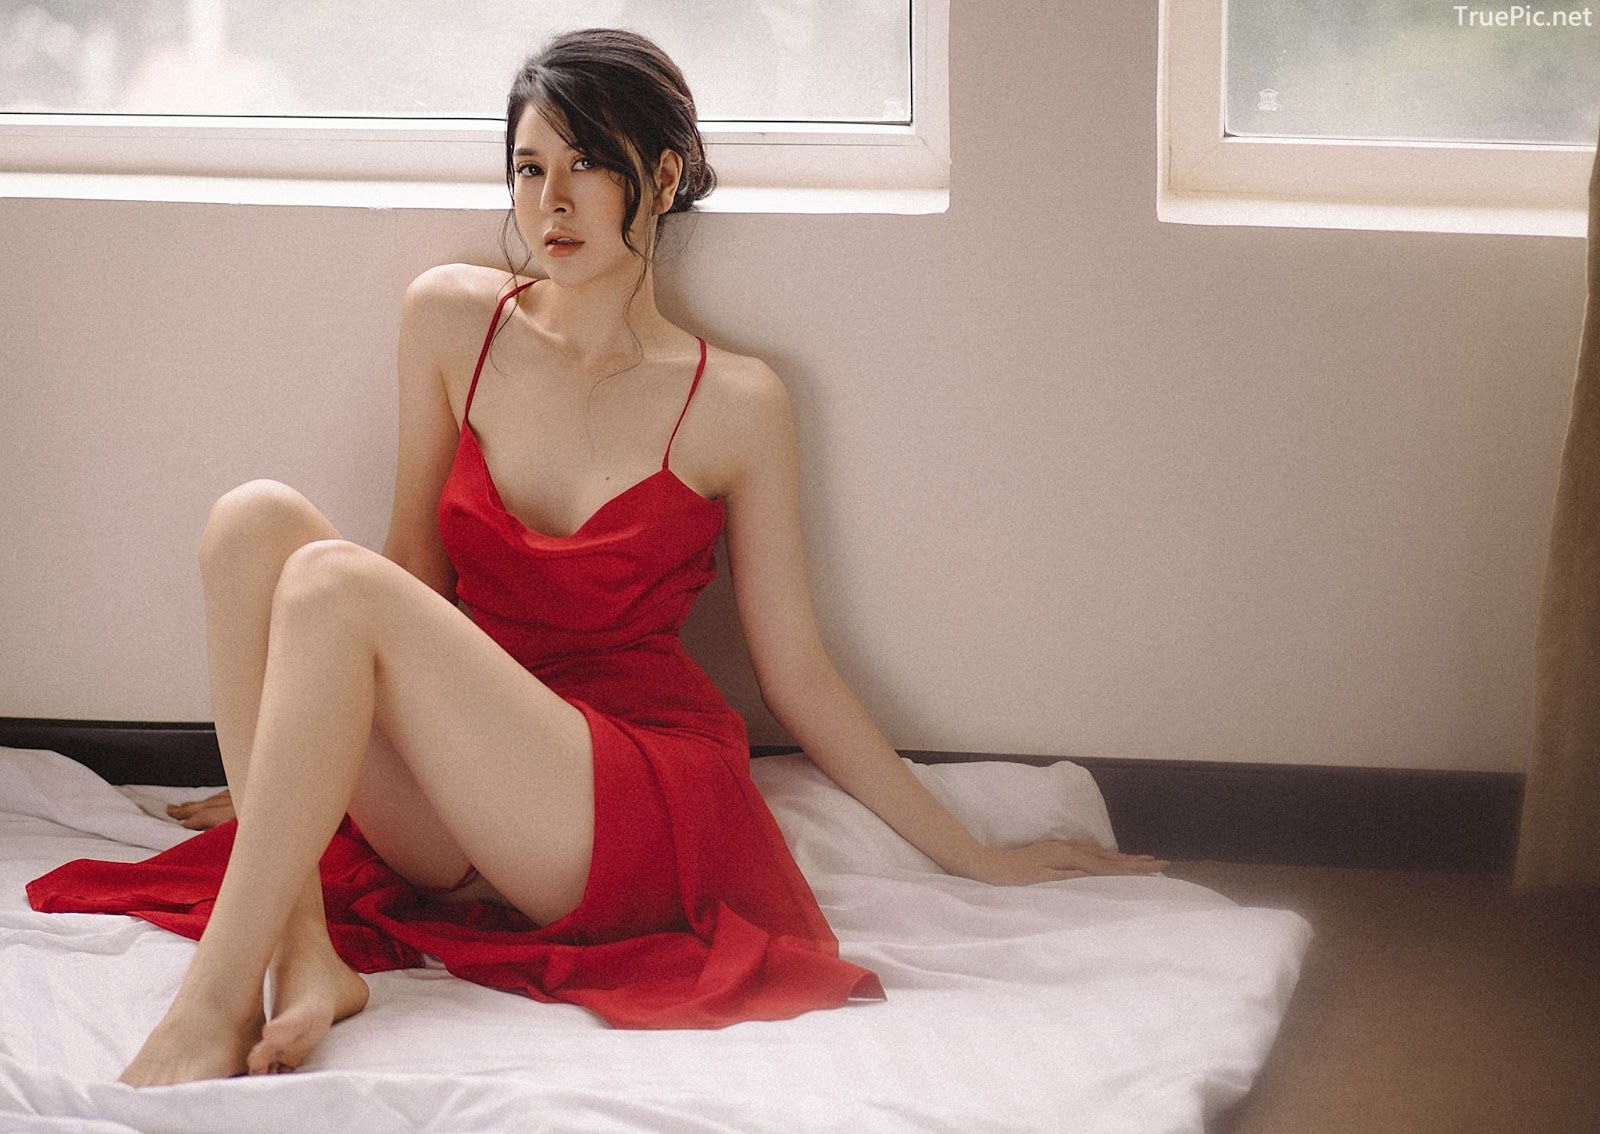 Vietnamese hot model - The beauty of Women with Red Camisole Dress - Photo by Linh Phan - Picture 1